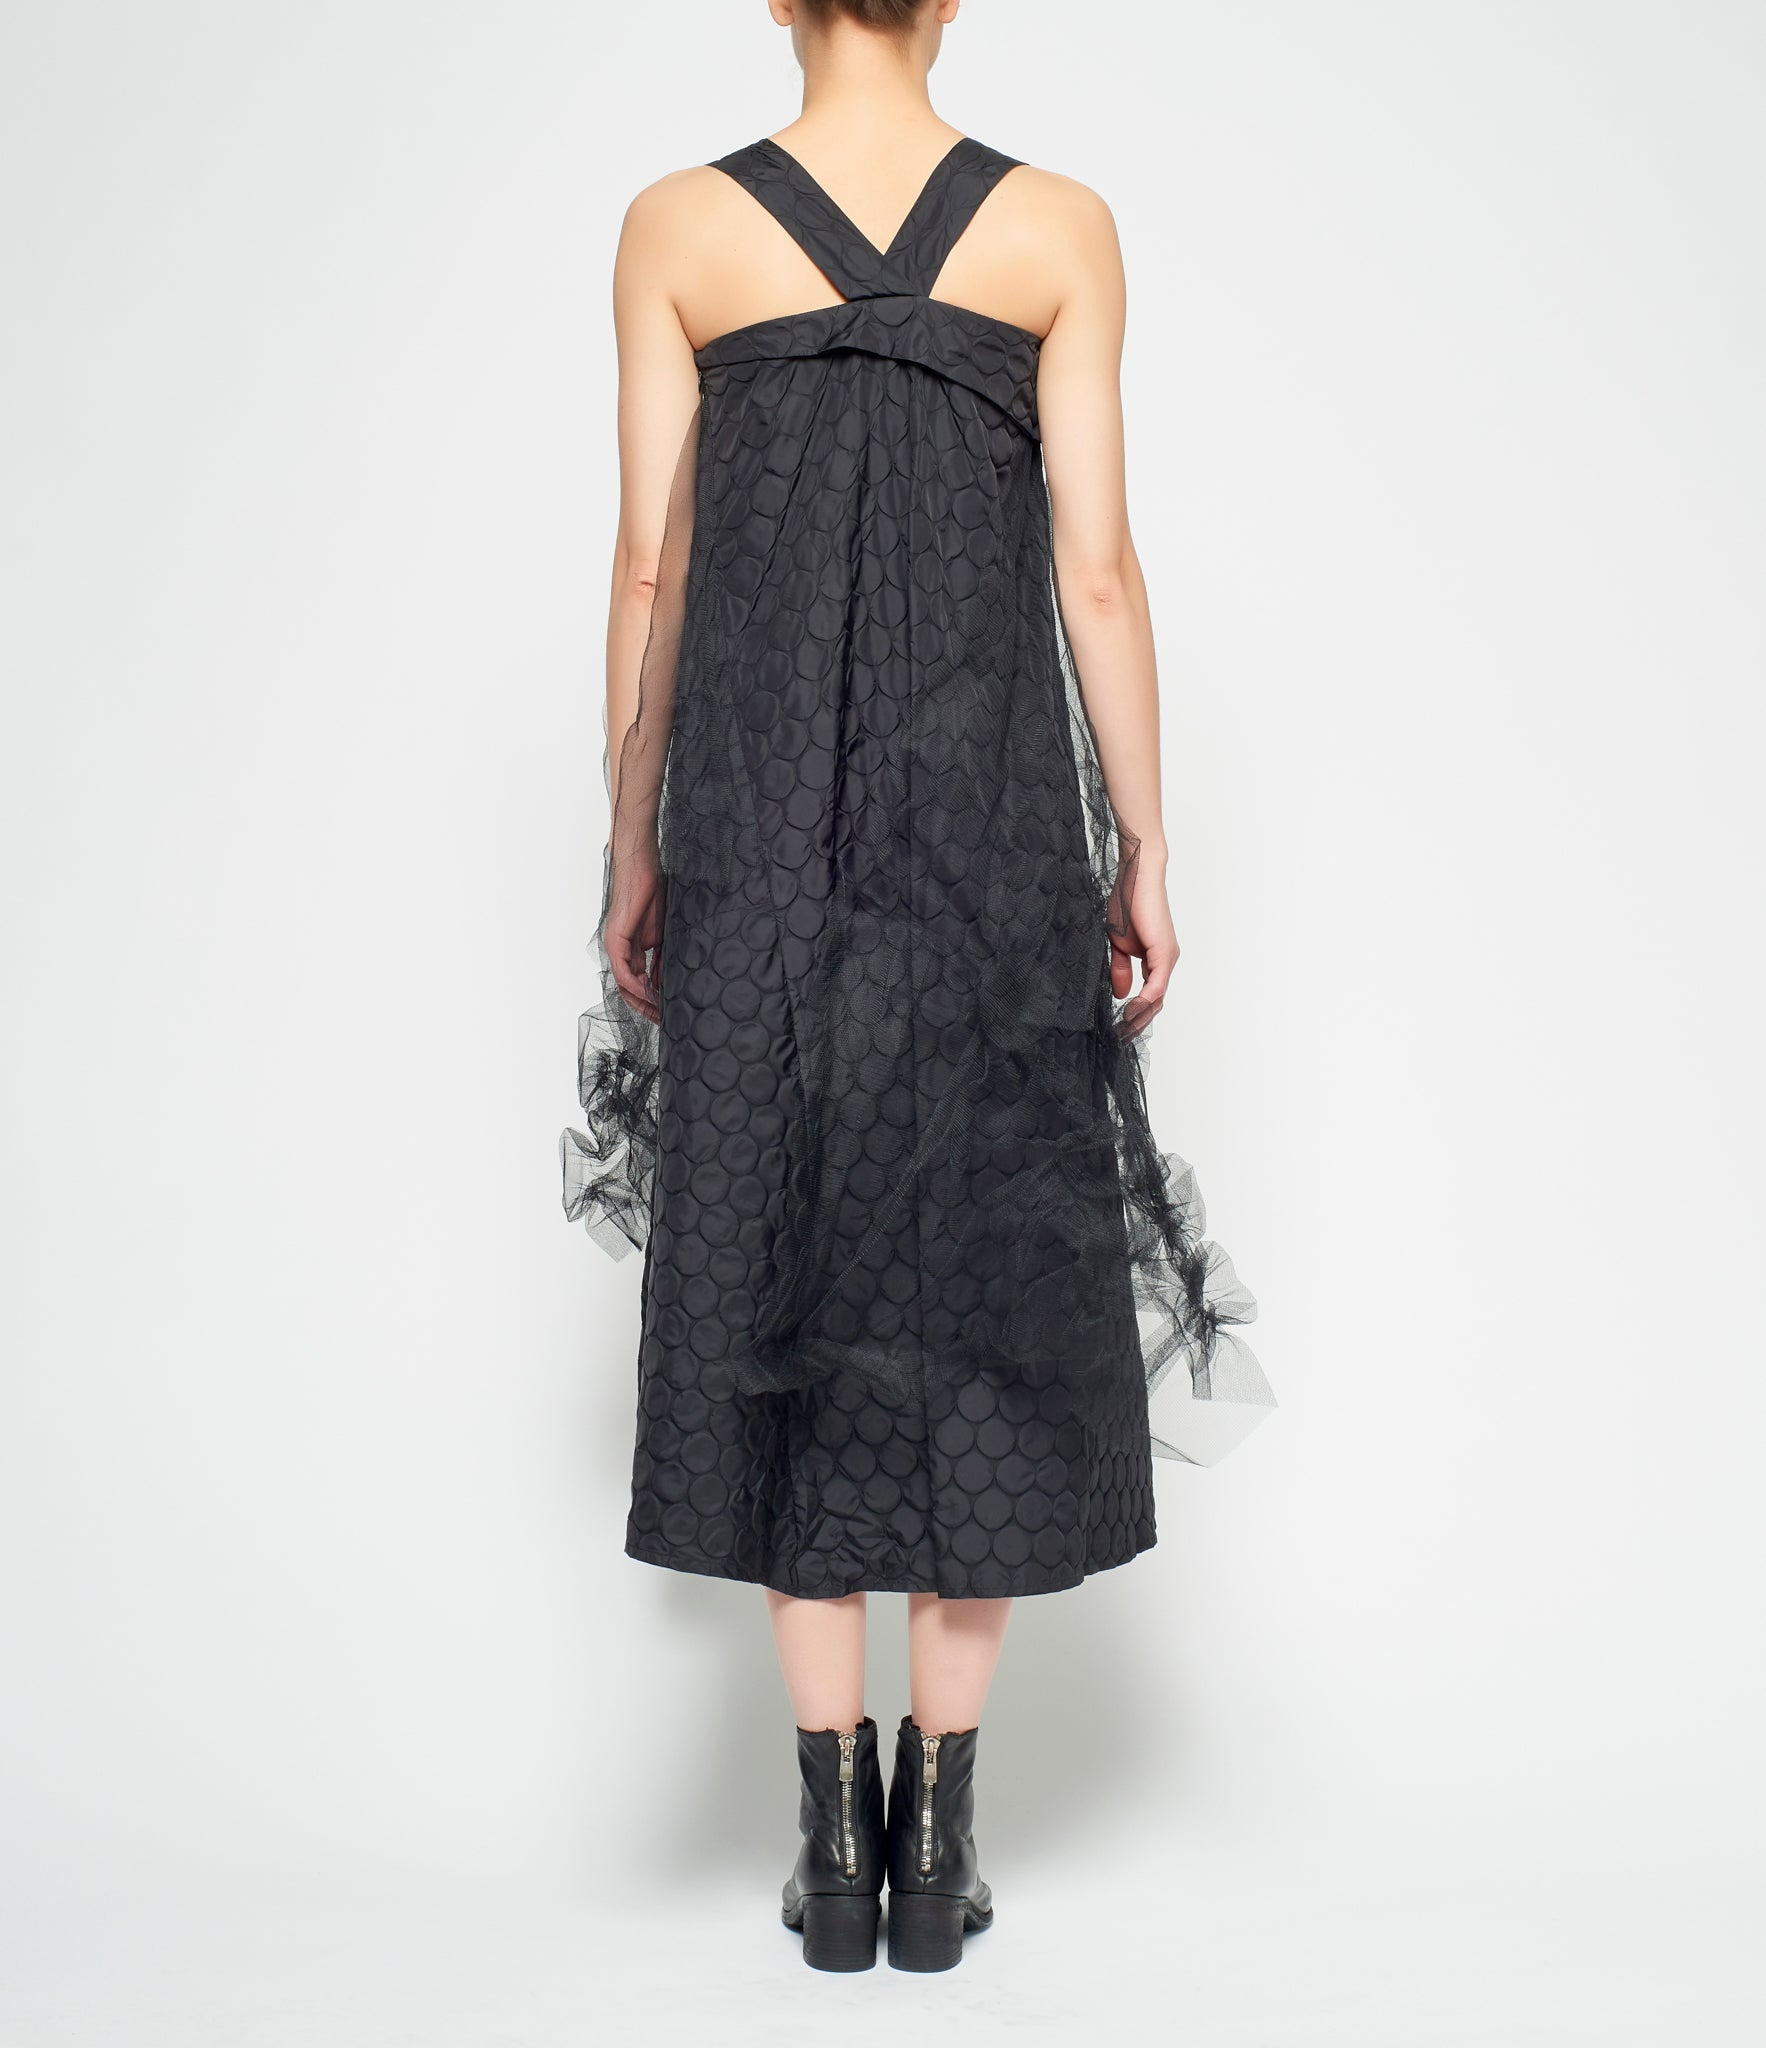 Replika Black Raised Bubble Netting Taffeta Dress